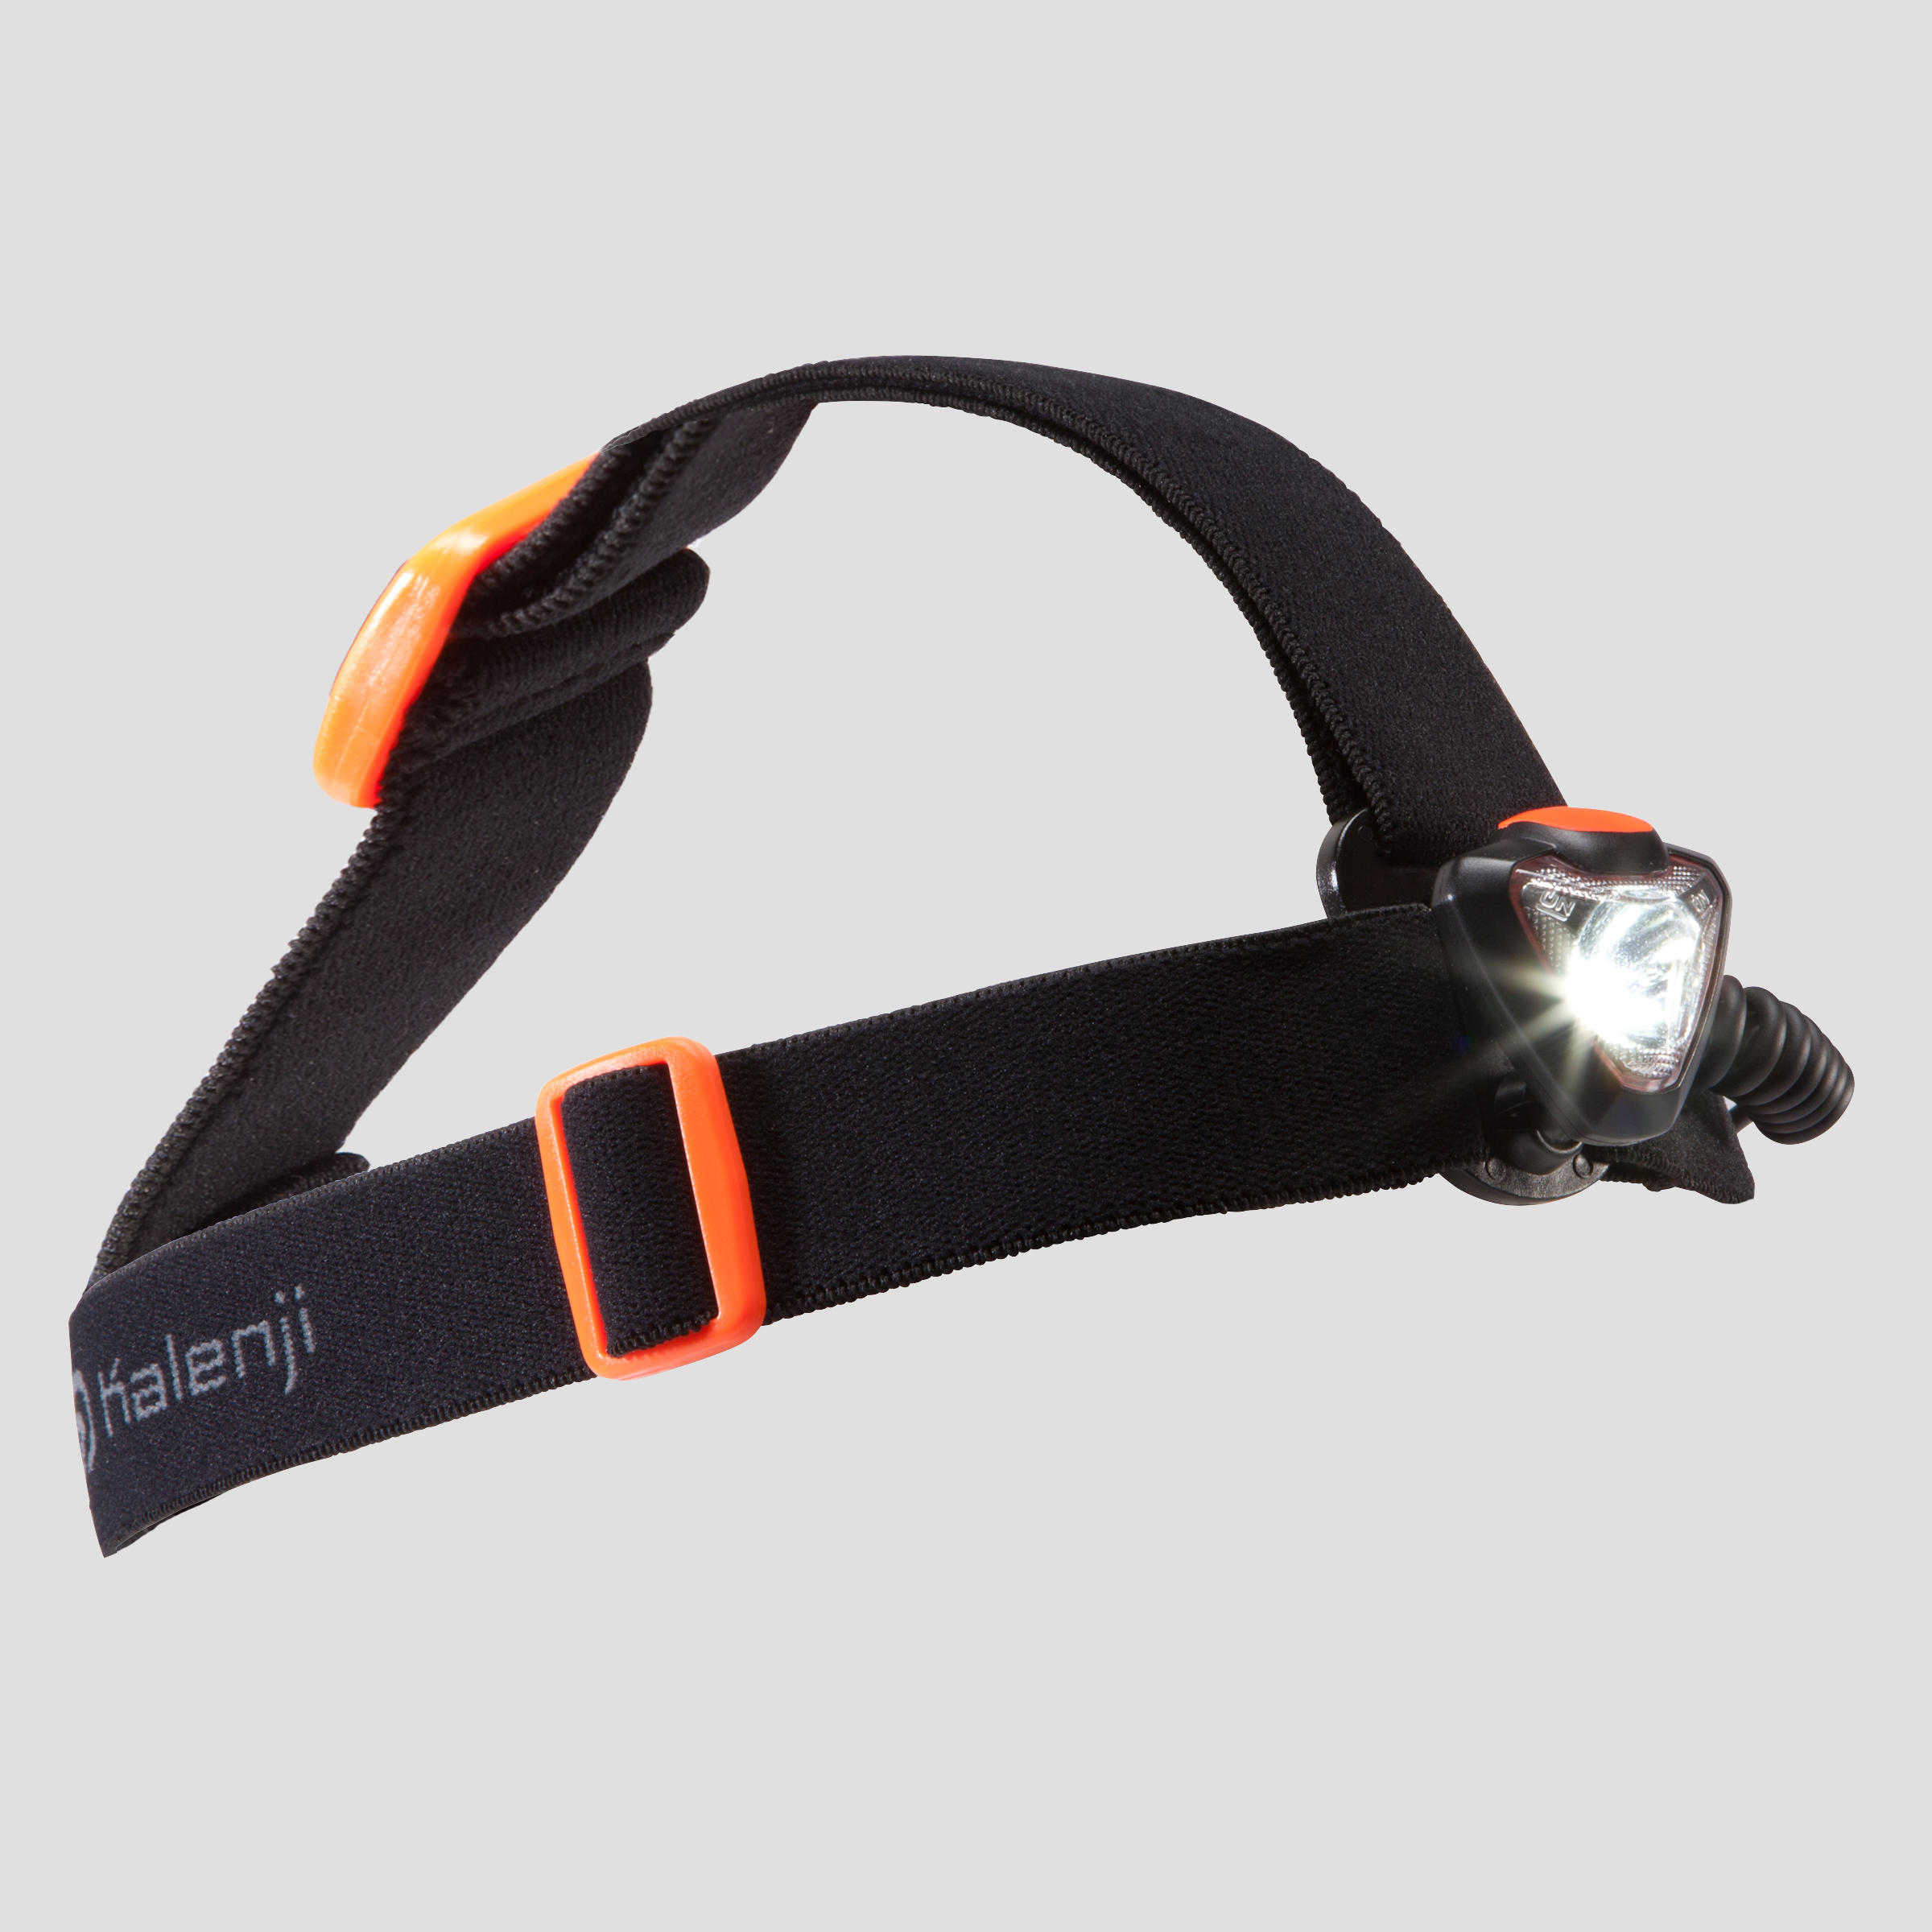 ONNIGHT 410 HEADLAMP TRAIL RUNNING BLACK ORANGE - 160 LUMENS